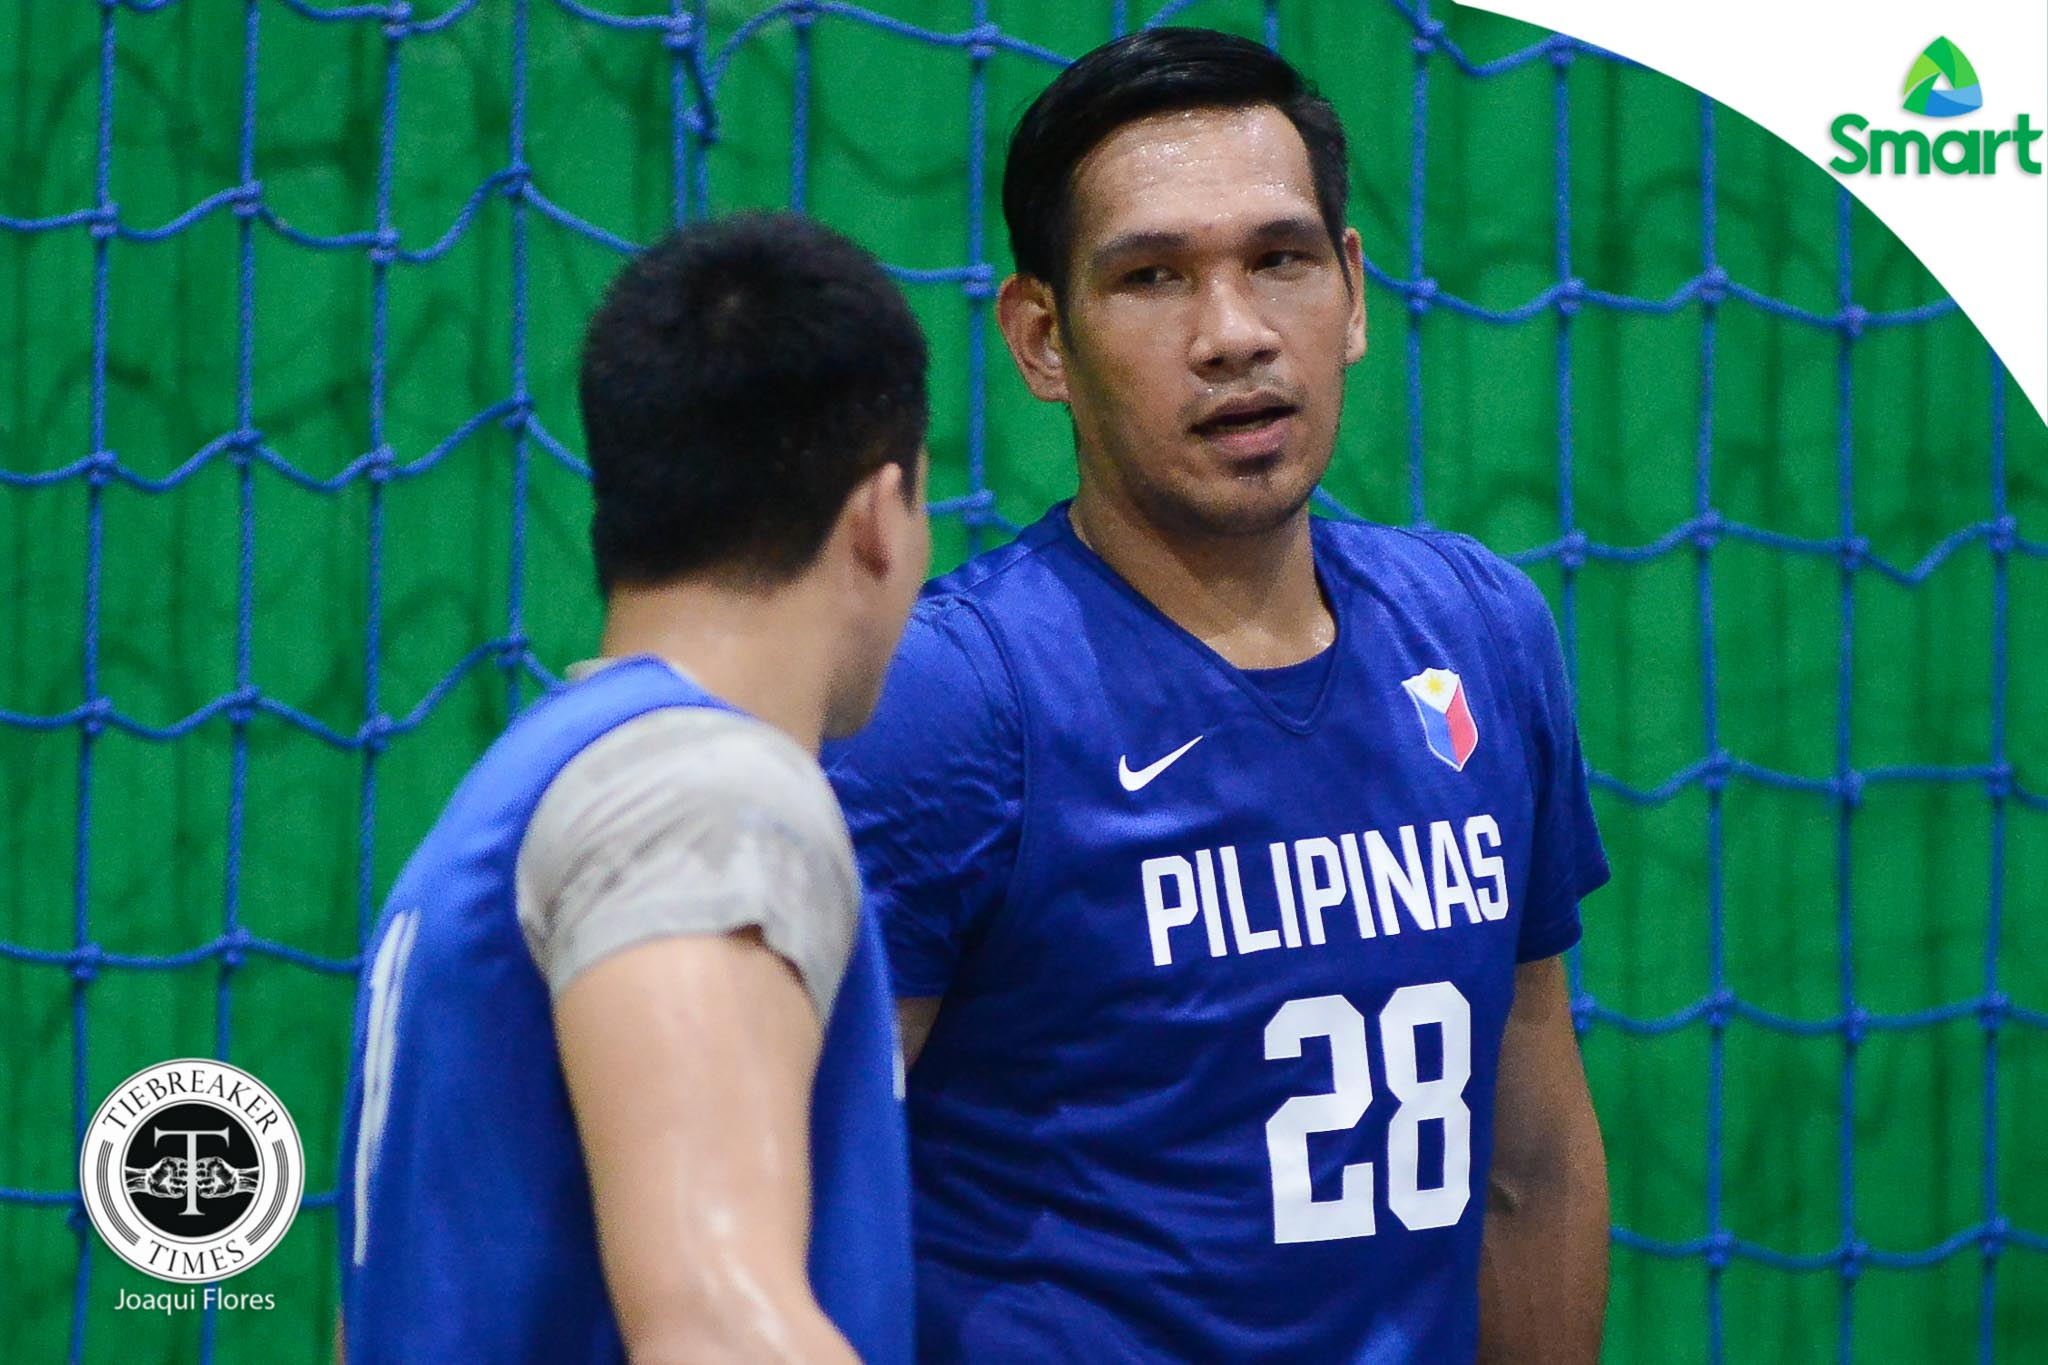 Philippine Sports News - Tiebreaker Times June Mar Fajardo ready to play against South Korea Basketball Gilas Pilipinas News  June Mar Fajardo Chot Reyes 2017 FIBA Asia Cup